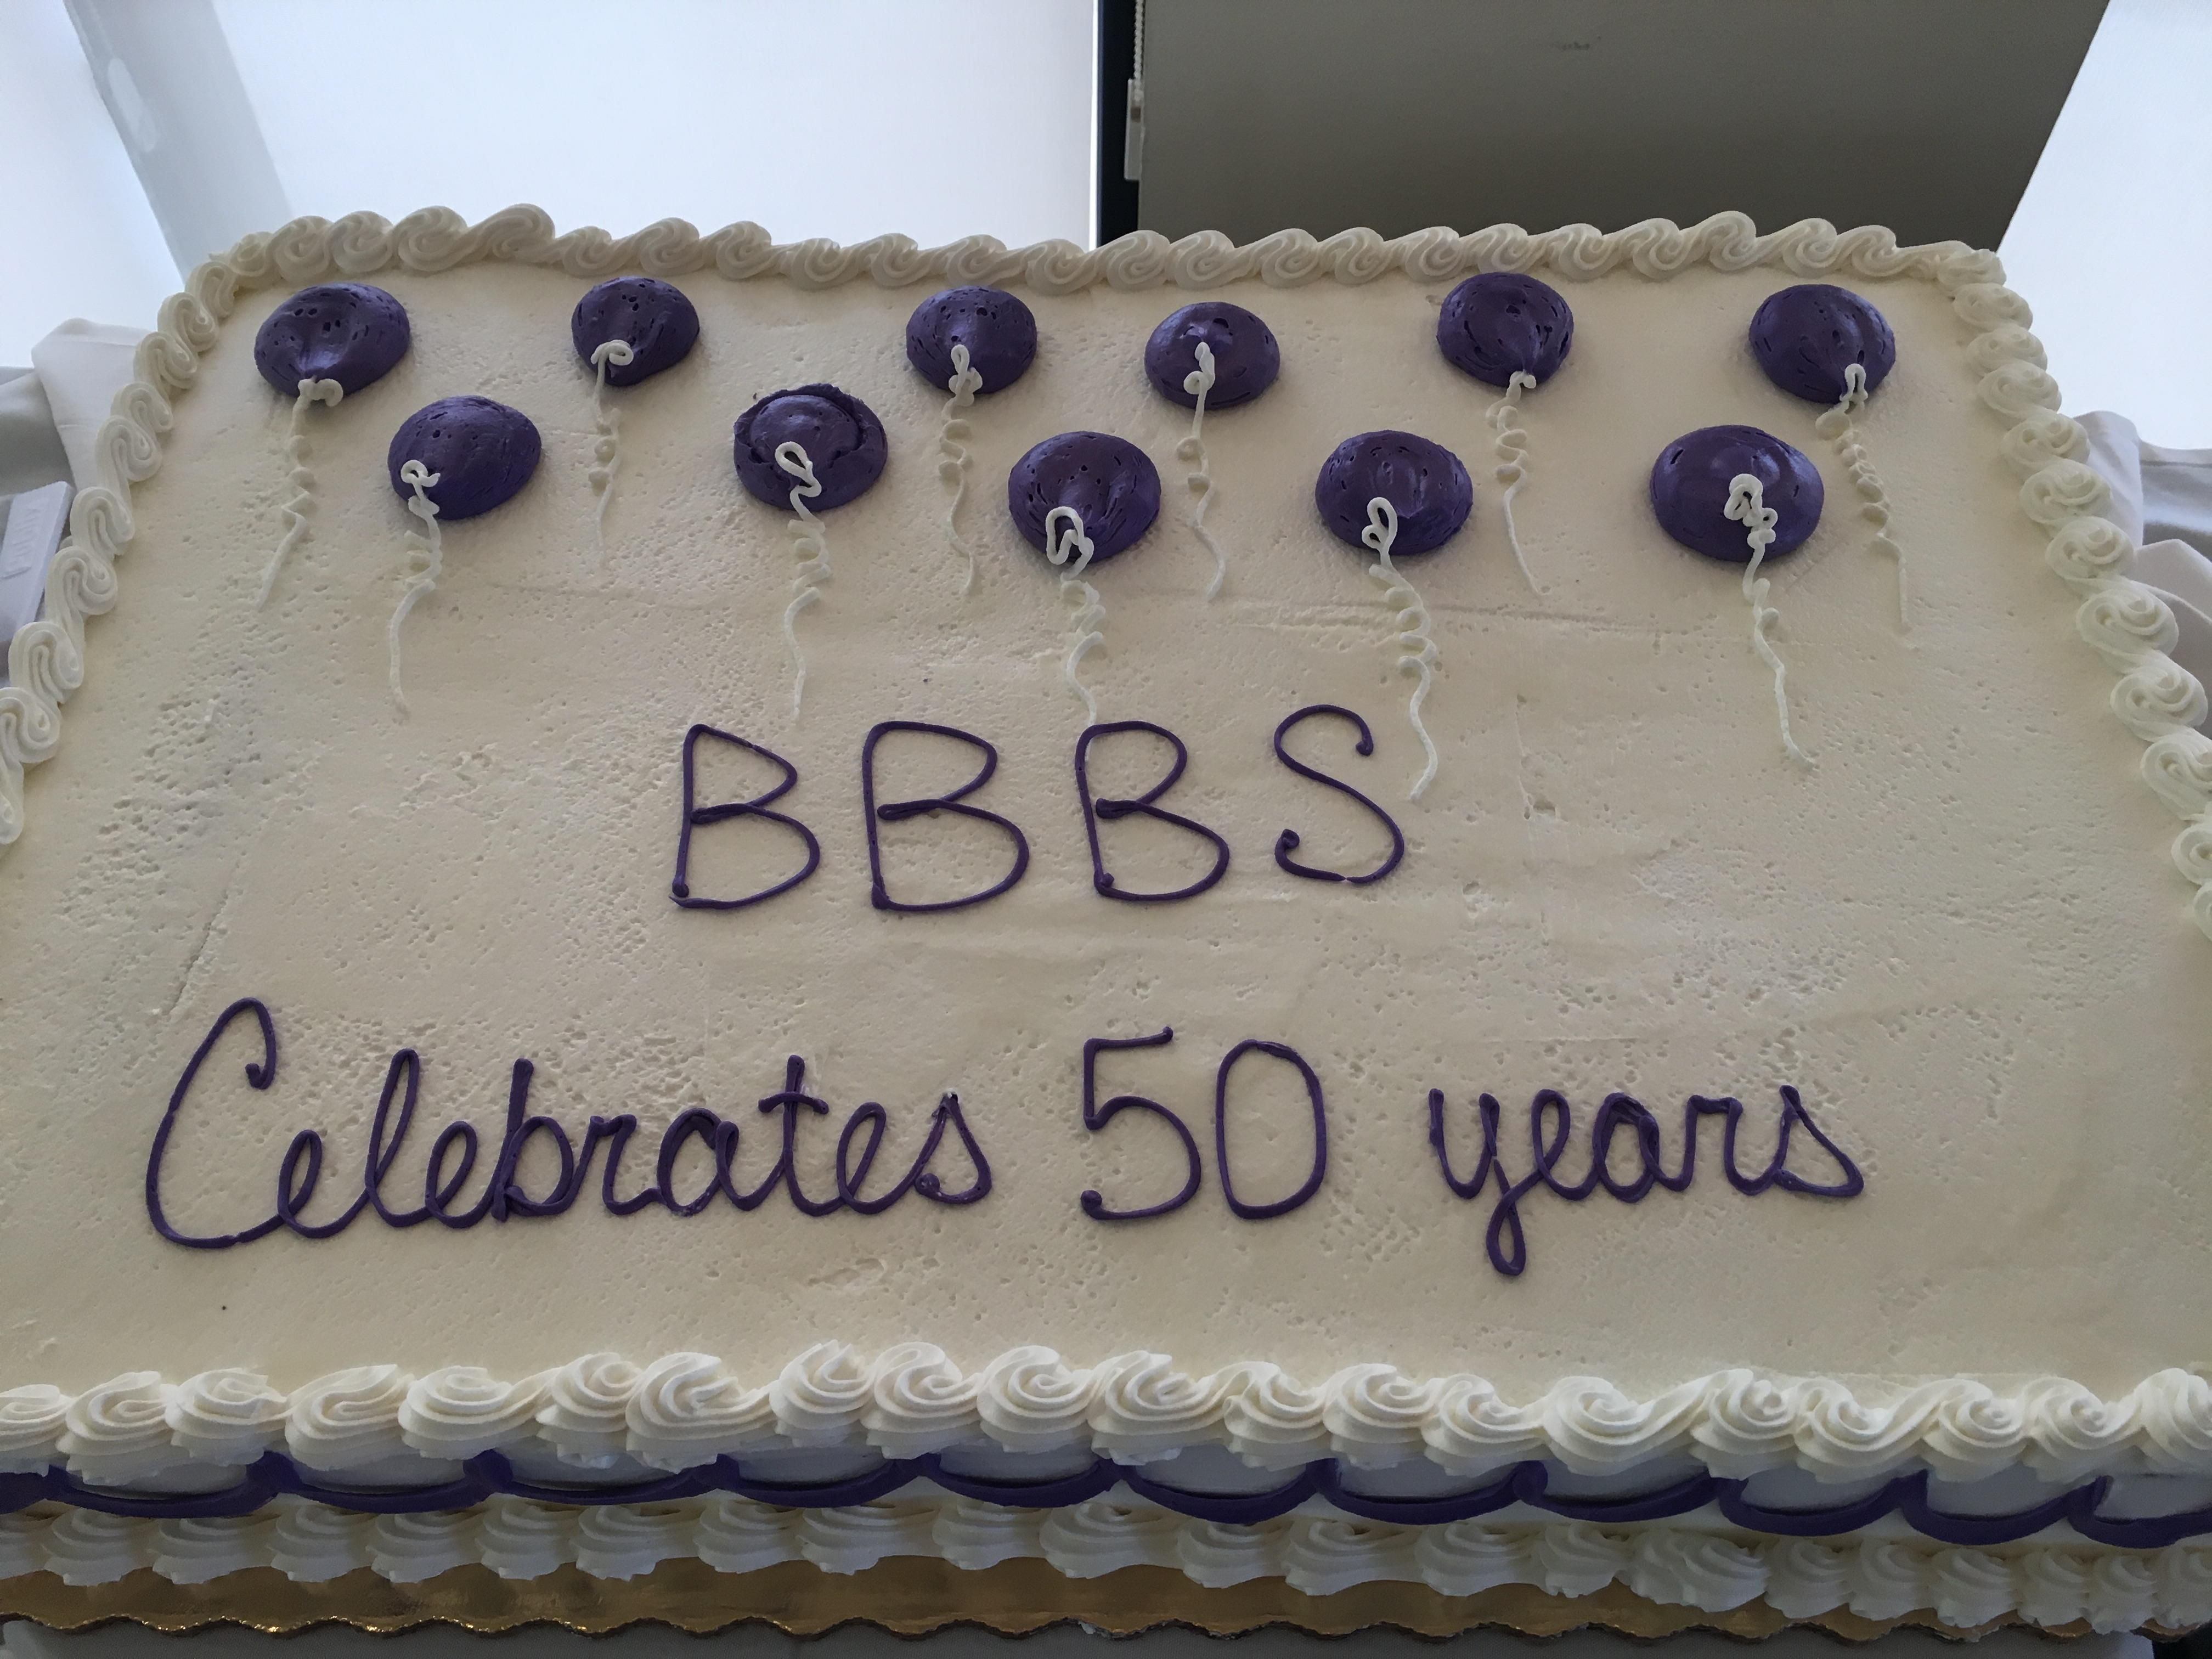 We Celebrated 50 Years of Serving Children in Pinellas County